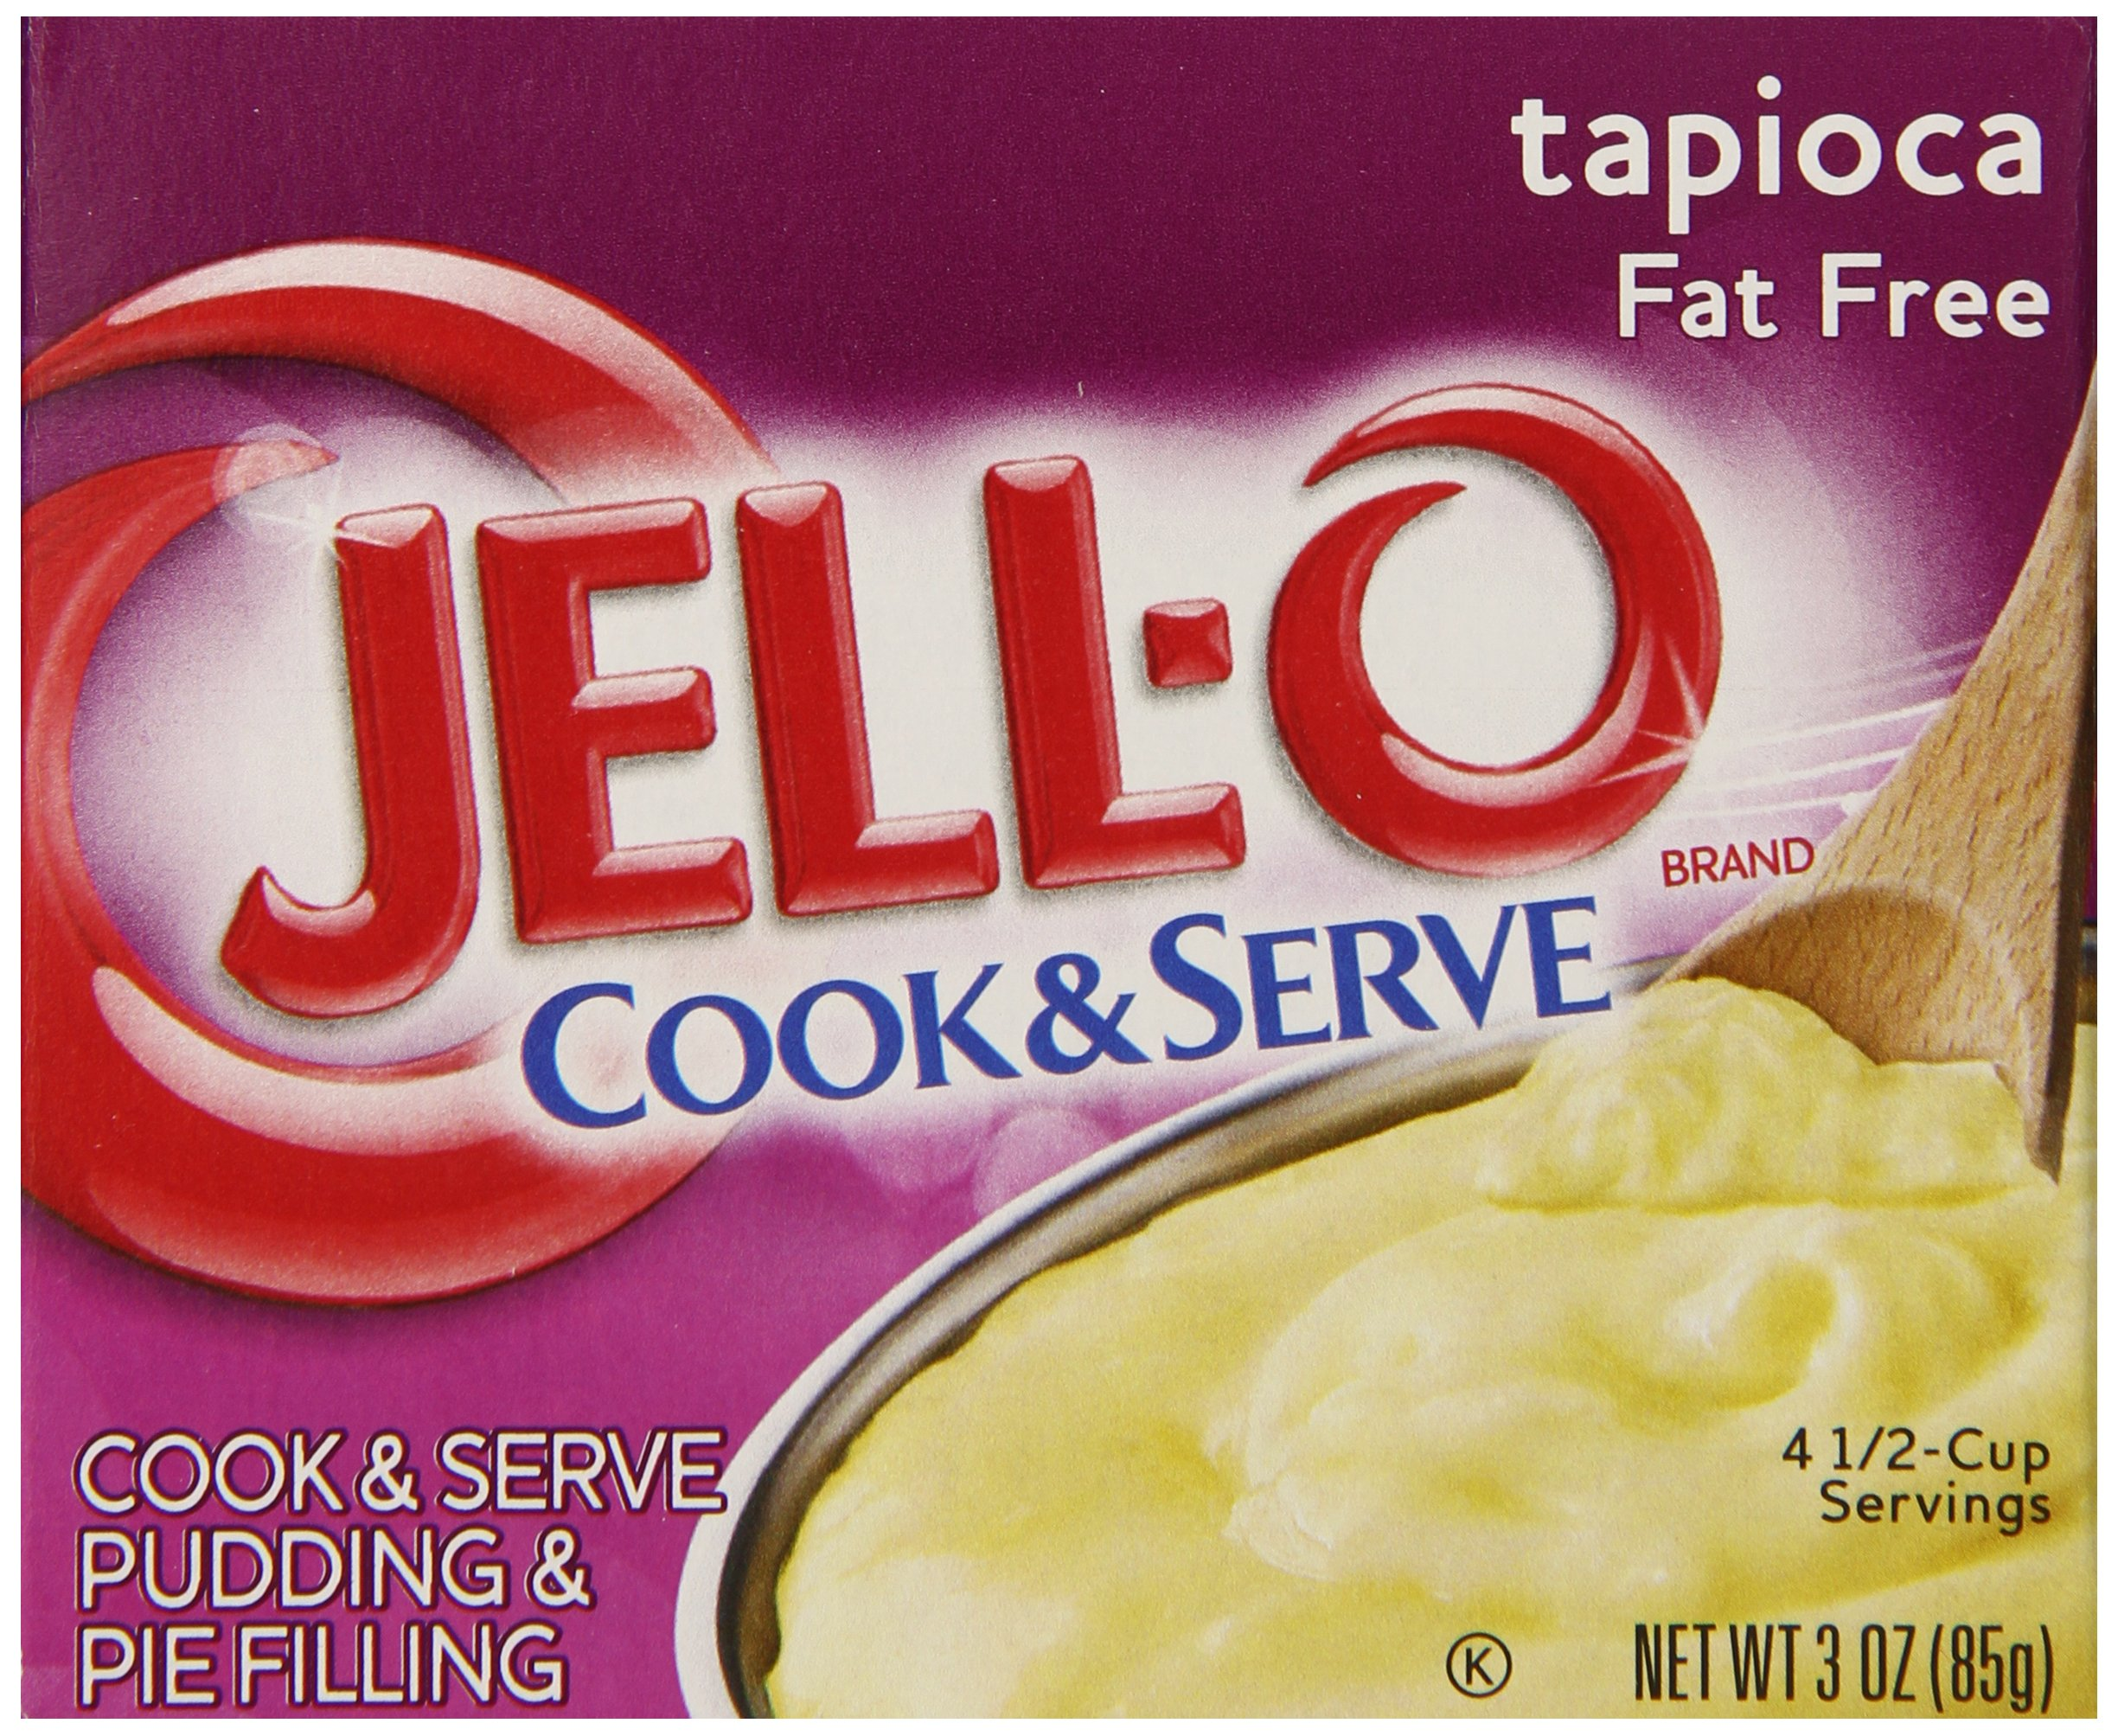 JELL-O Fat Free Tapioca Pudding & Pie Filling Mix (3 oz Boxes, Pack of 24) by Jell-O (Image #1)